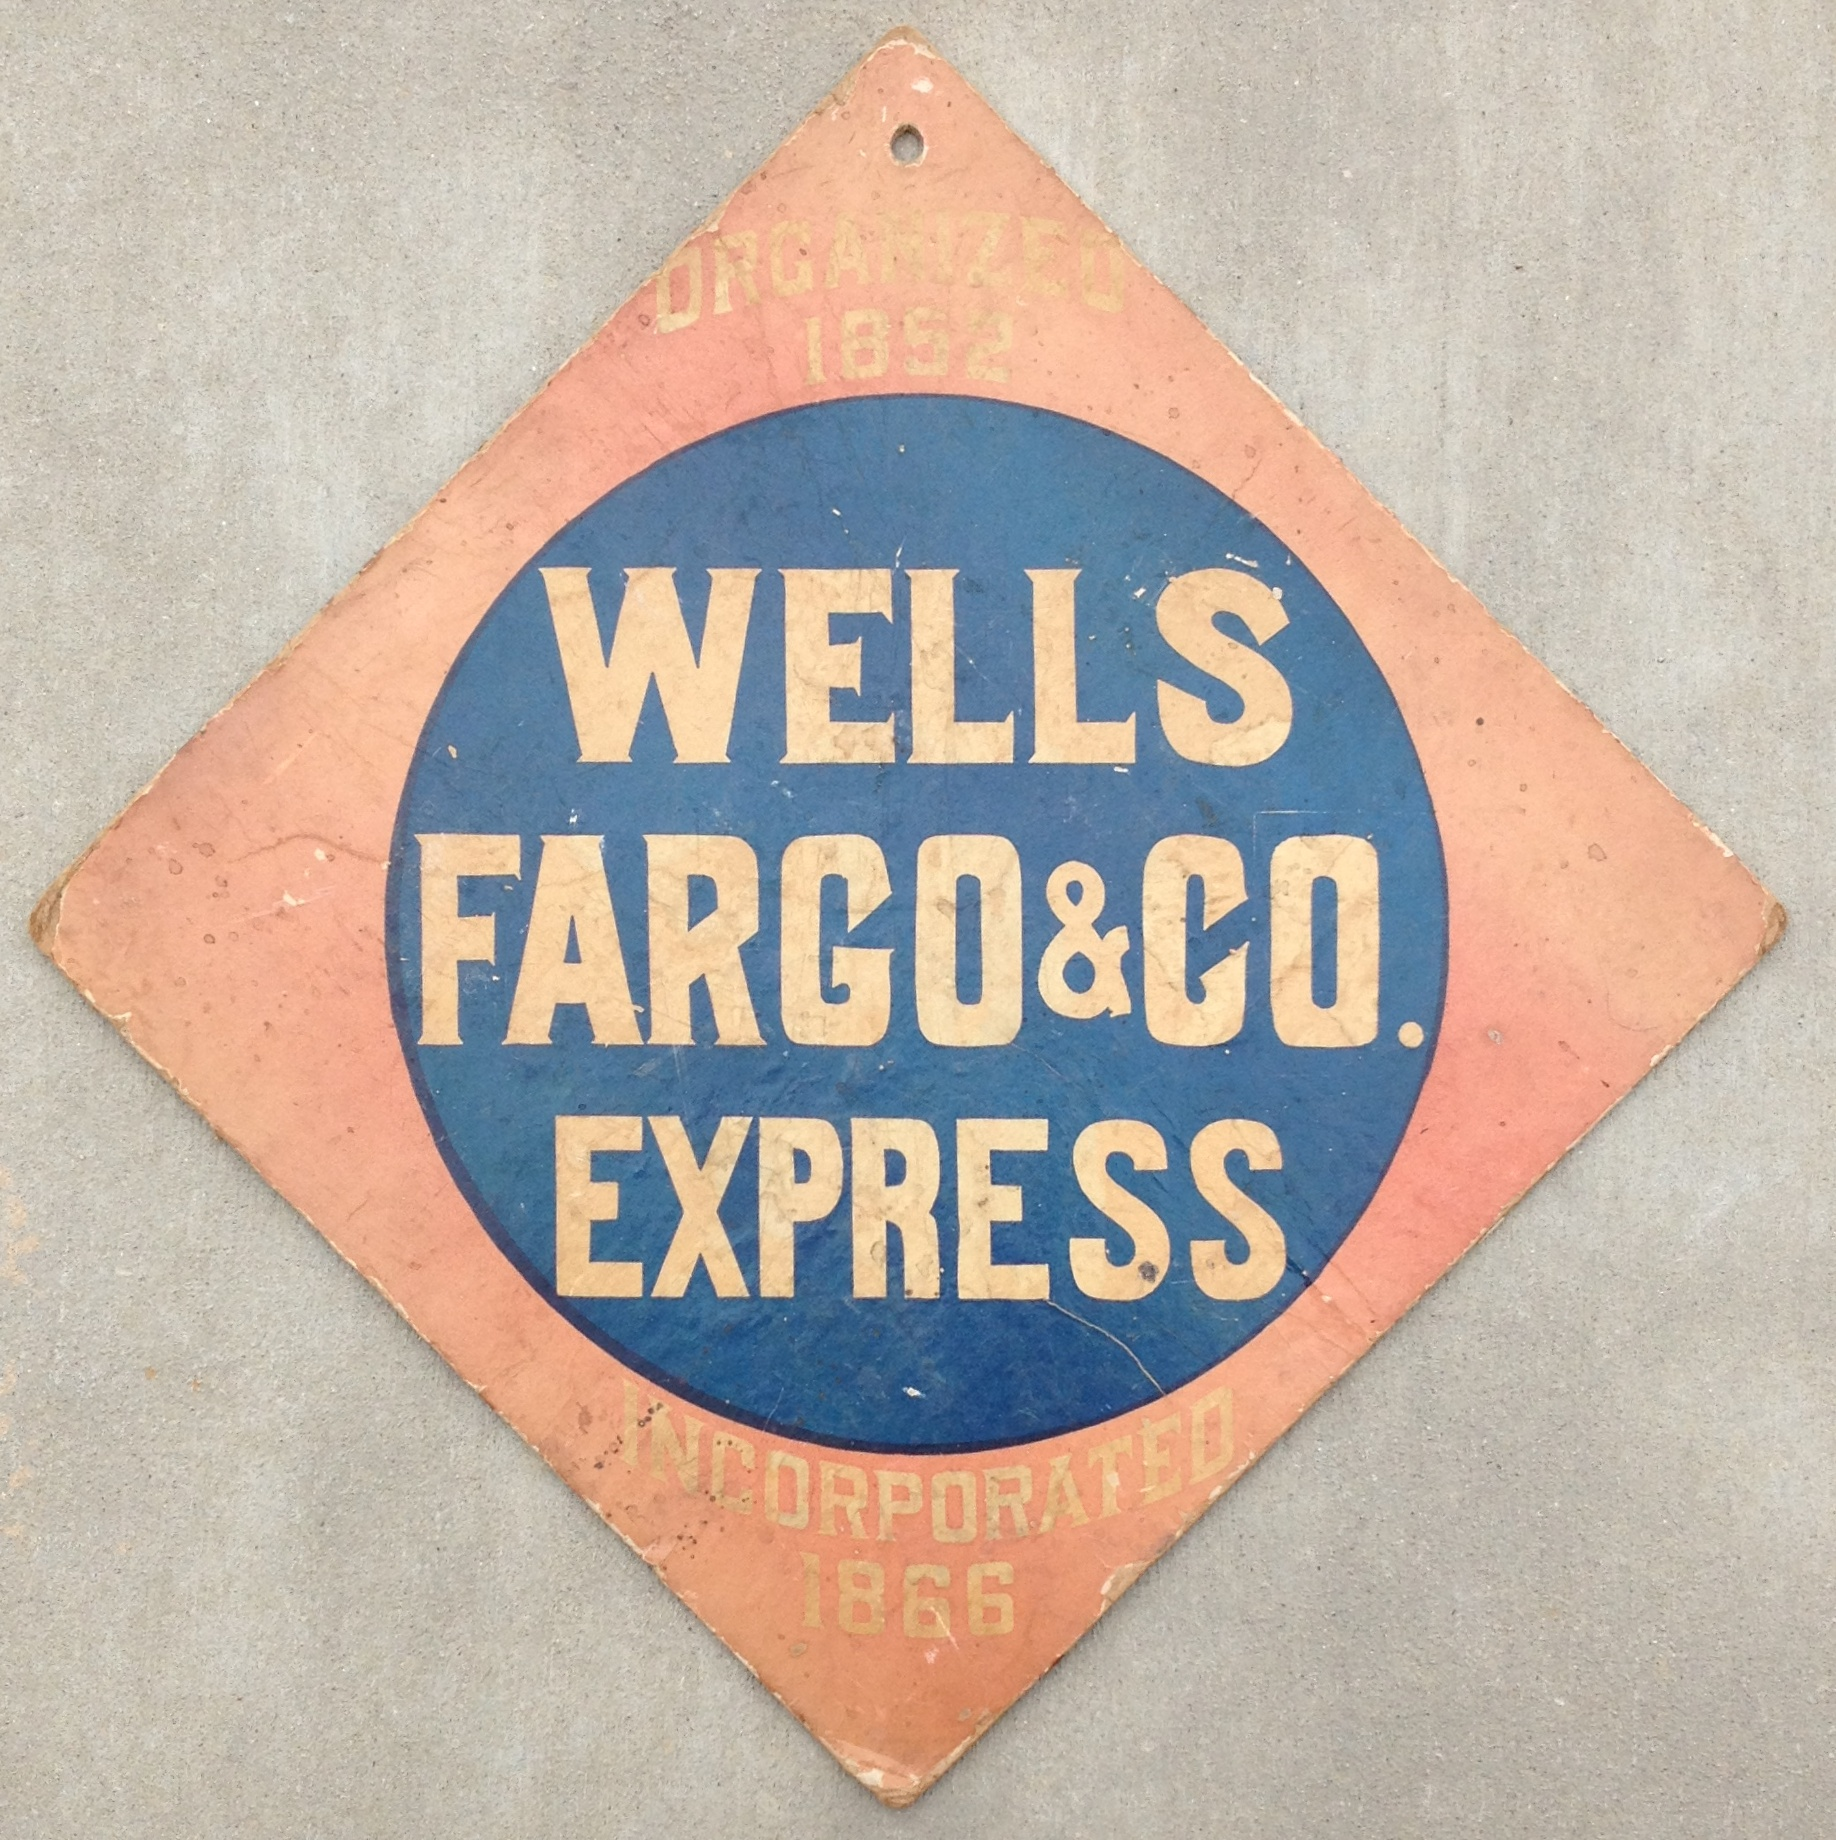 Wells Fargo & Co Express 1898 Call Card